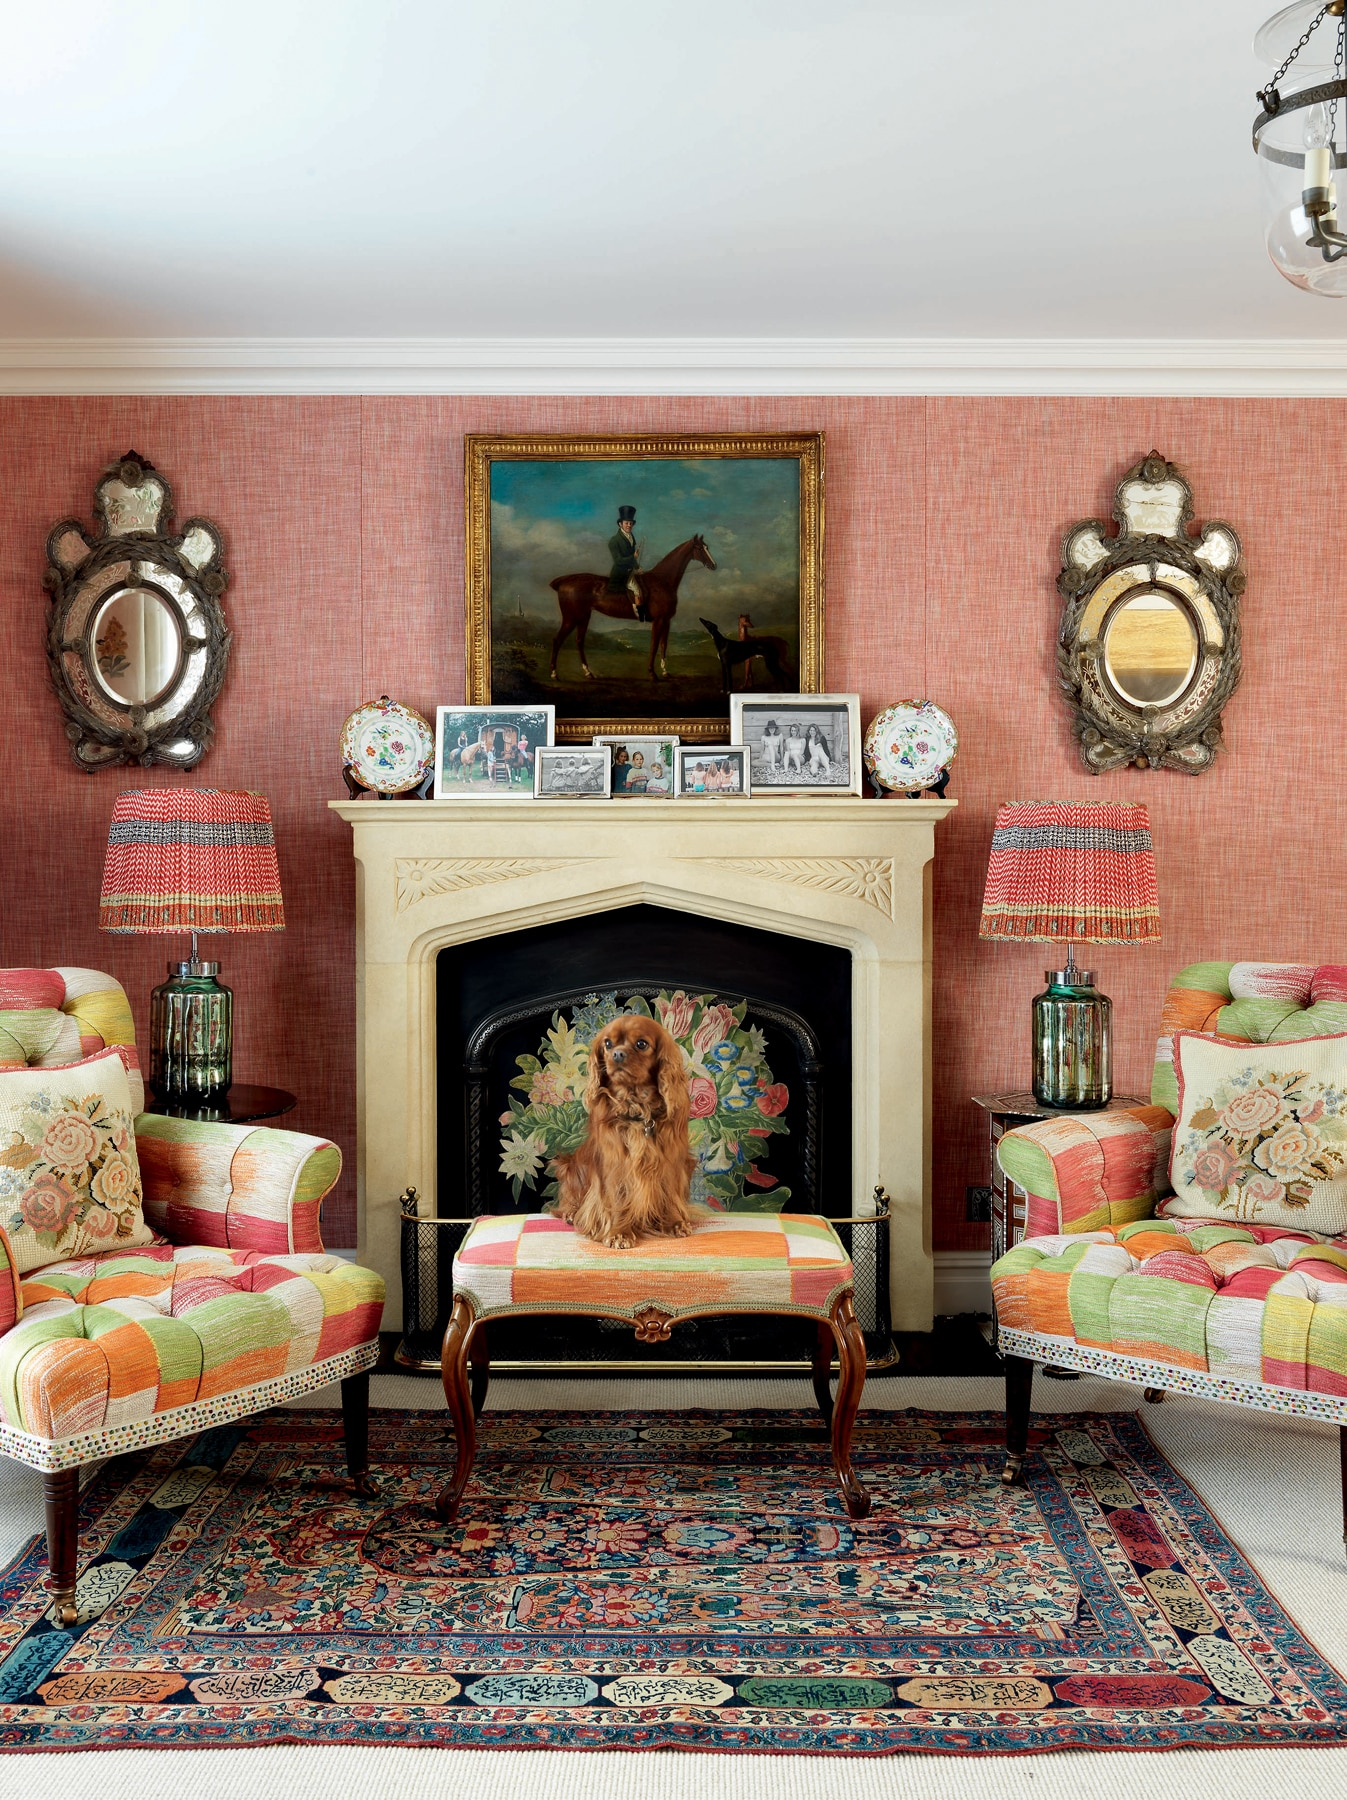 Living room space with matching multicolored armchairs and a dog sitting in front of a fireplace with a decorated mantle